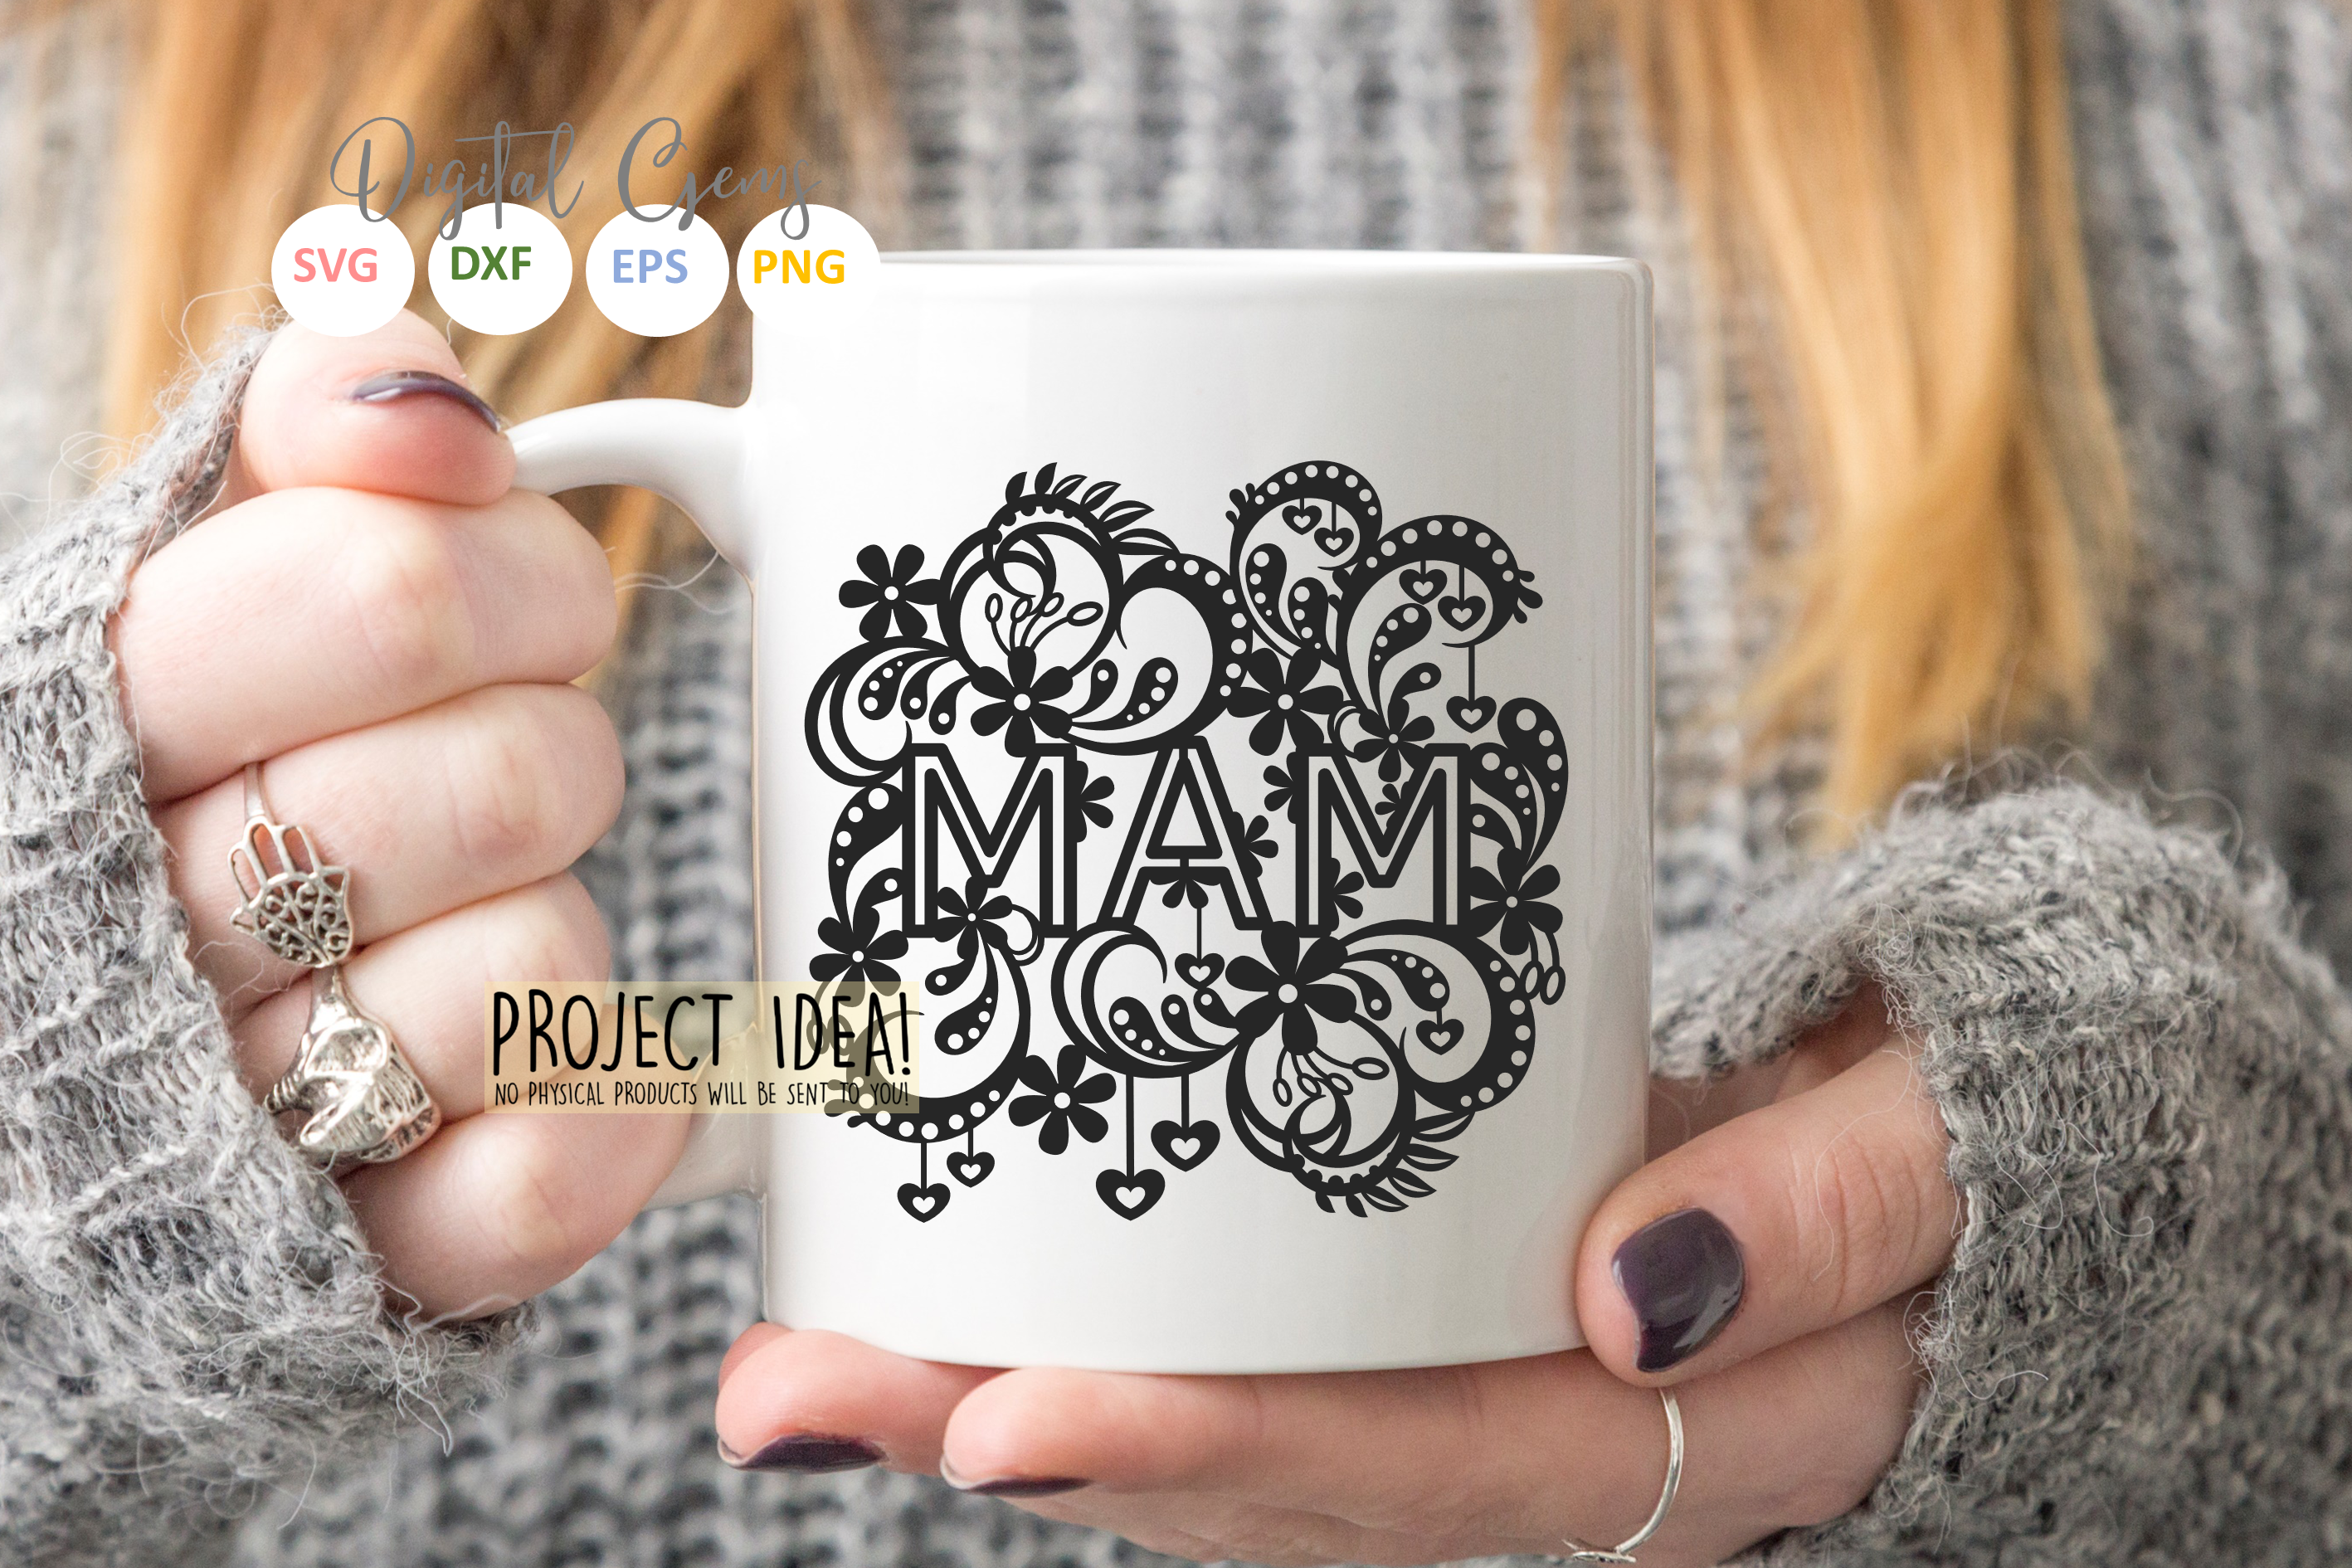 Mam paper cut design SVG / DXF / EPS files example image 3